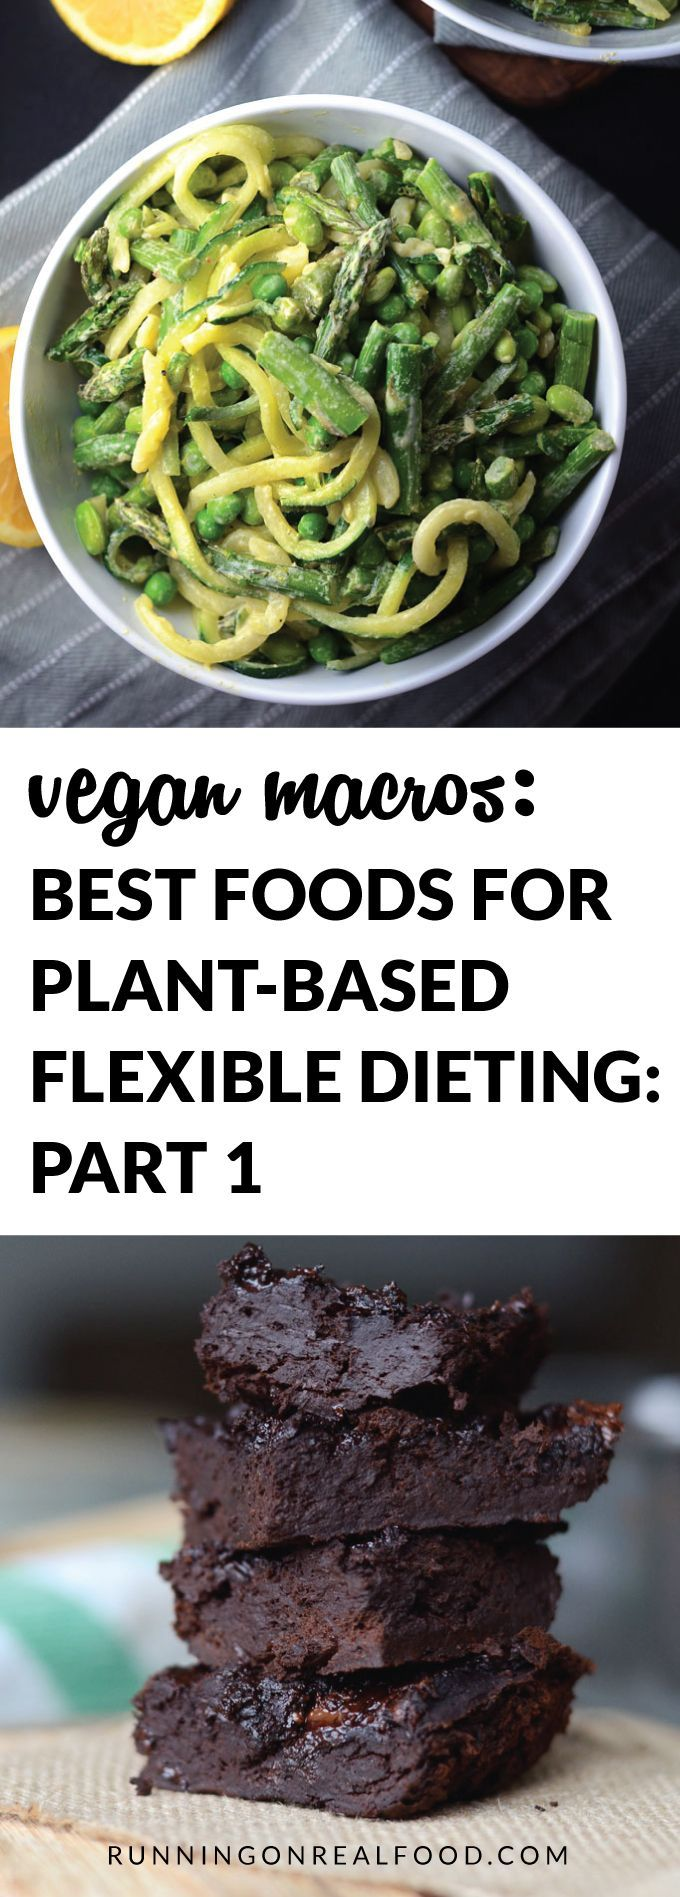 Reach all your health and fitness goals with plant-based flexible dieting! It's absolutely possible to reduce body fat, build muscle and improve your fitness on a vegan diet. Check out these foods I've found to be helpful in the process.